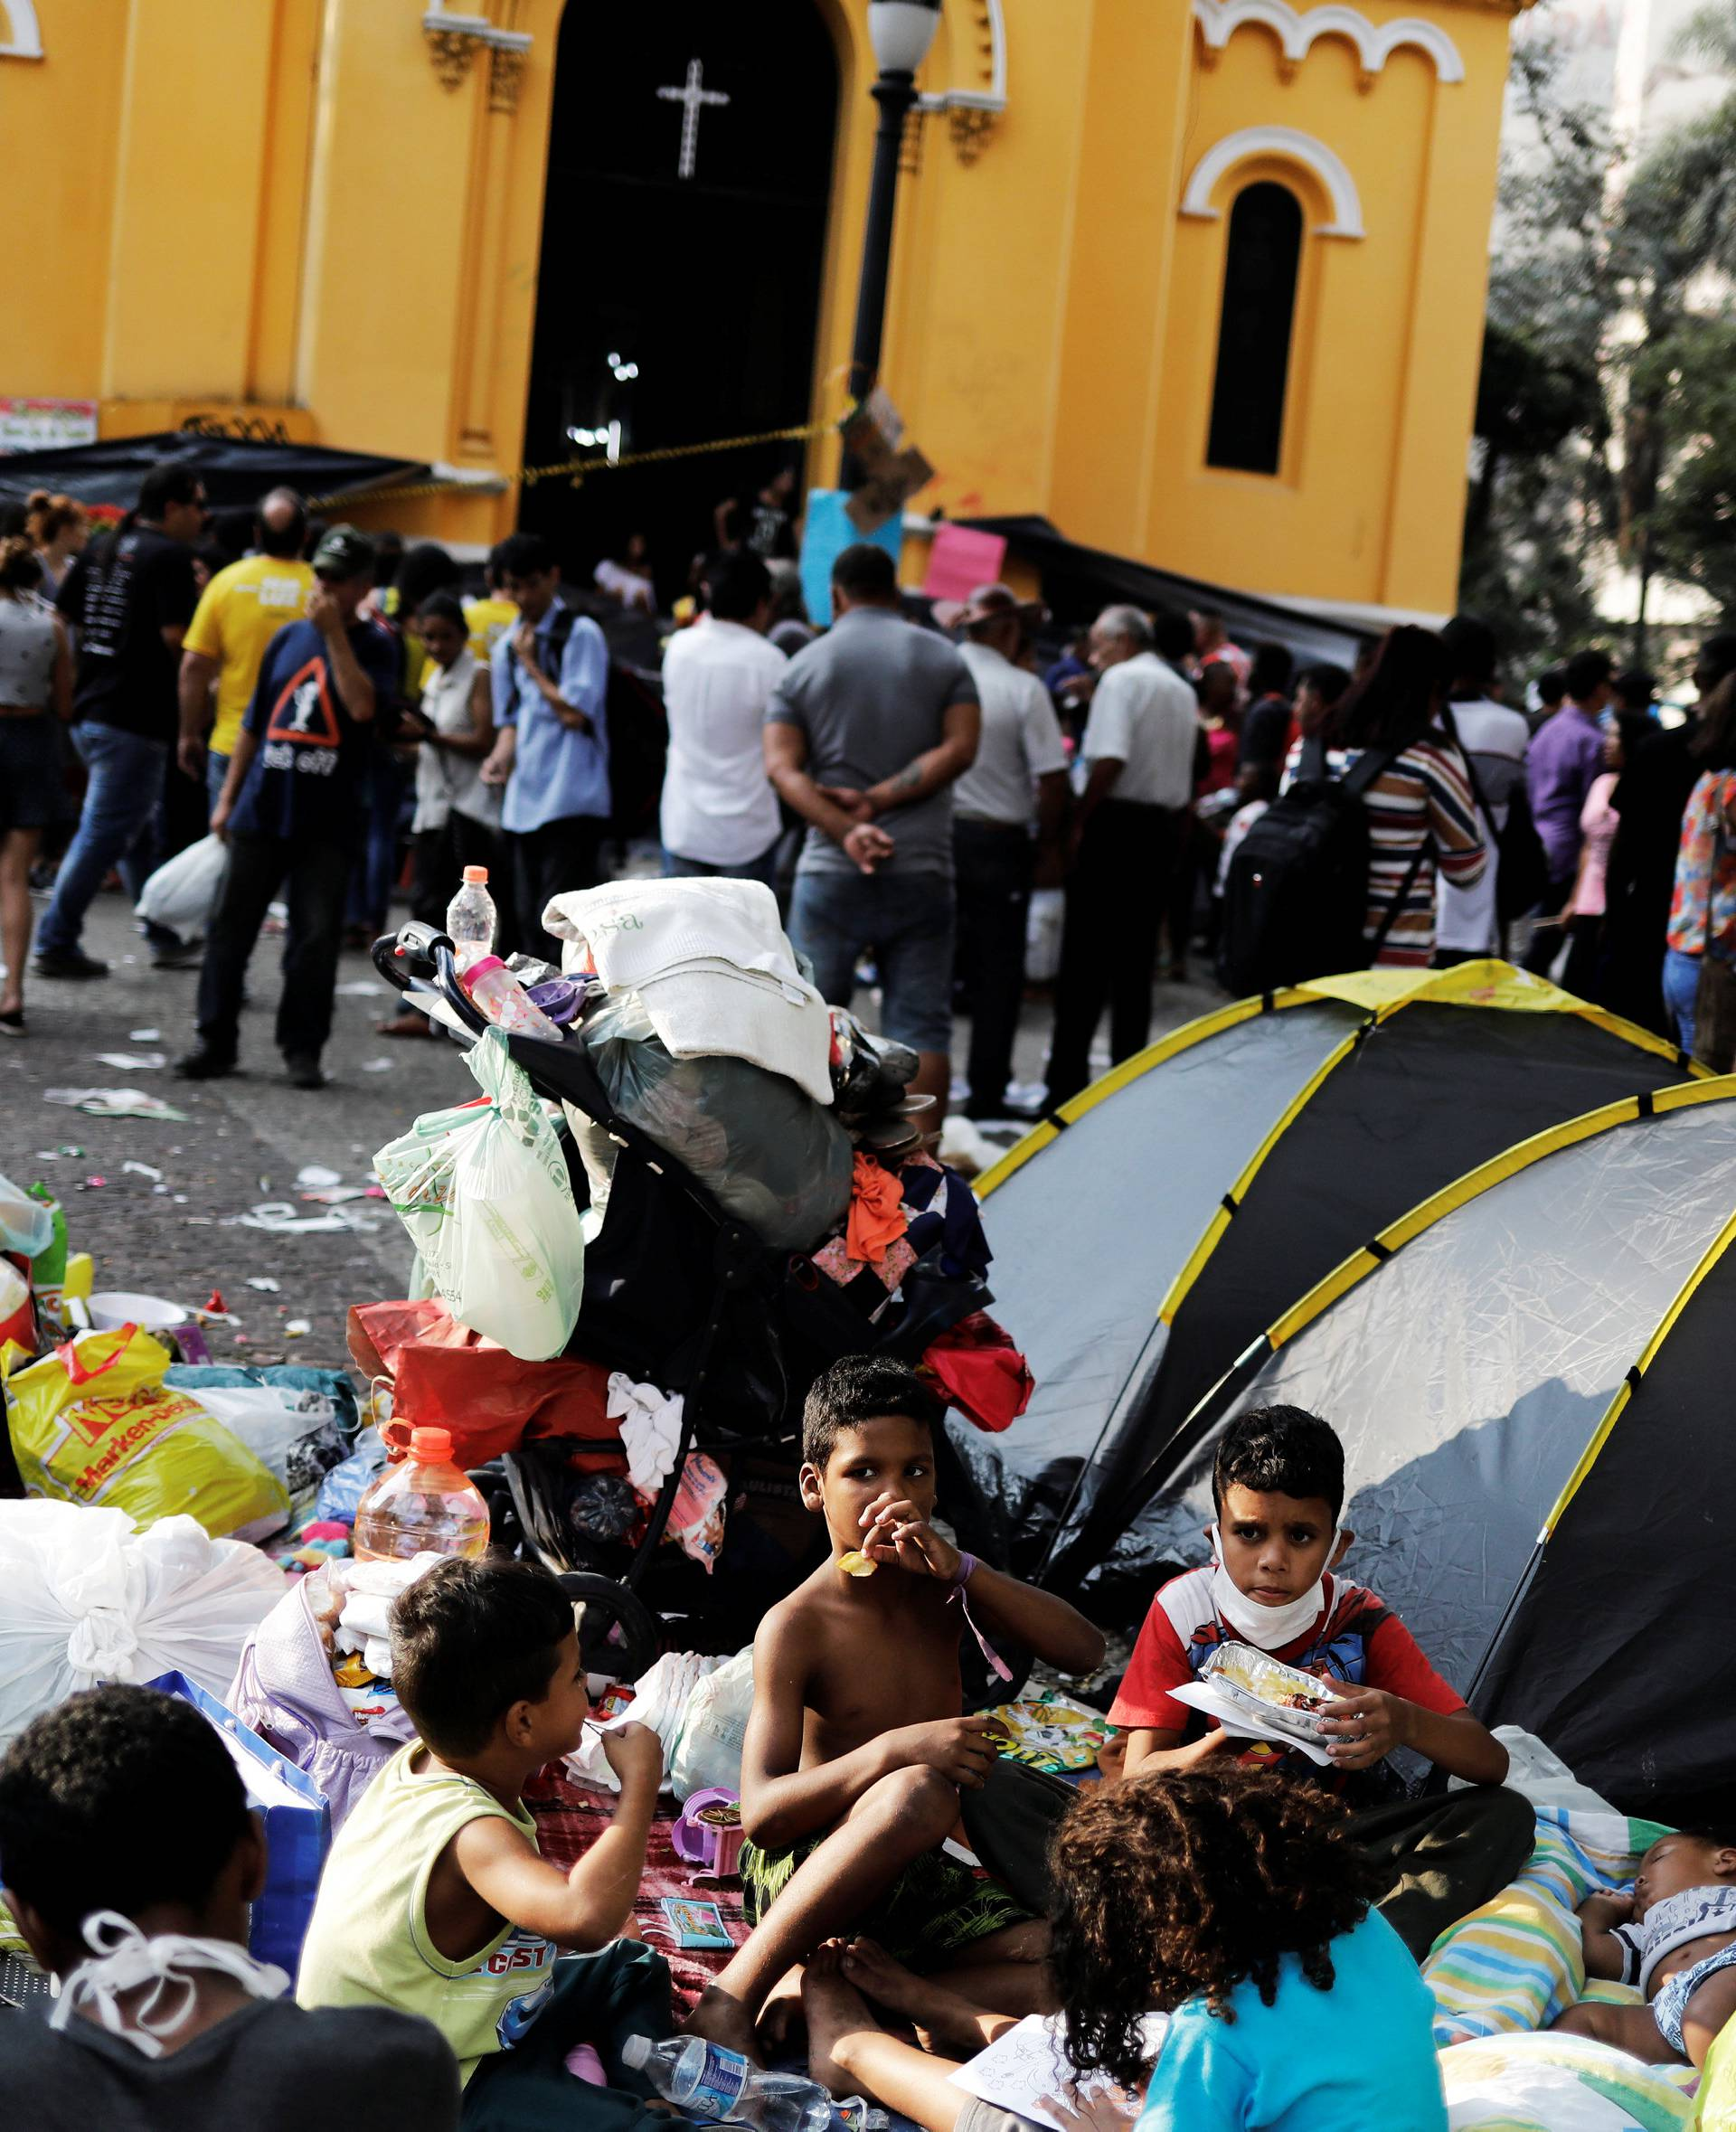 Children from homeless families that were living in the building that caught on fire, have lunch donated by well-wishers, next to a church at Largo do Painsandu Square in Sao Paulo